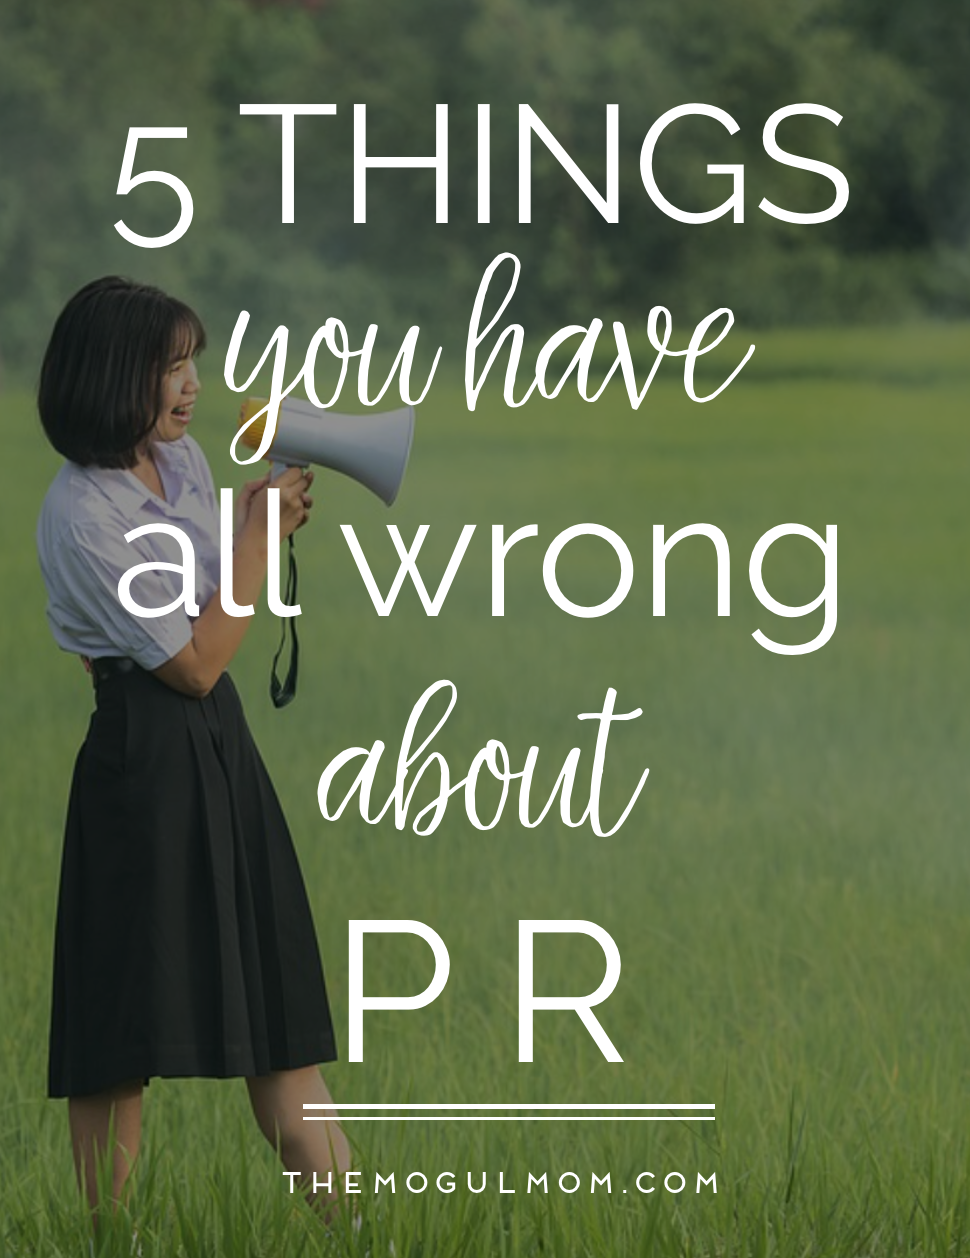 The 5 Things you Have Wrong about PR